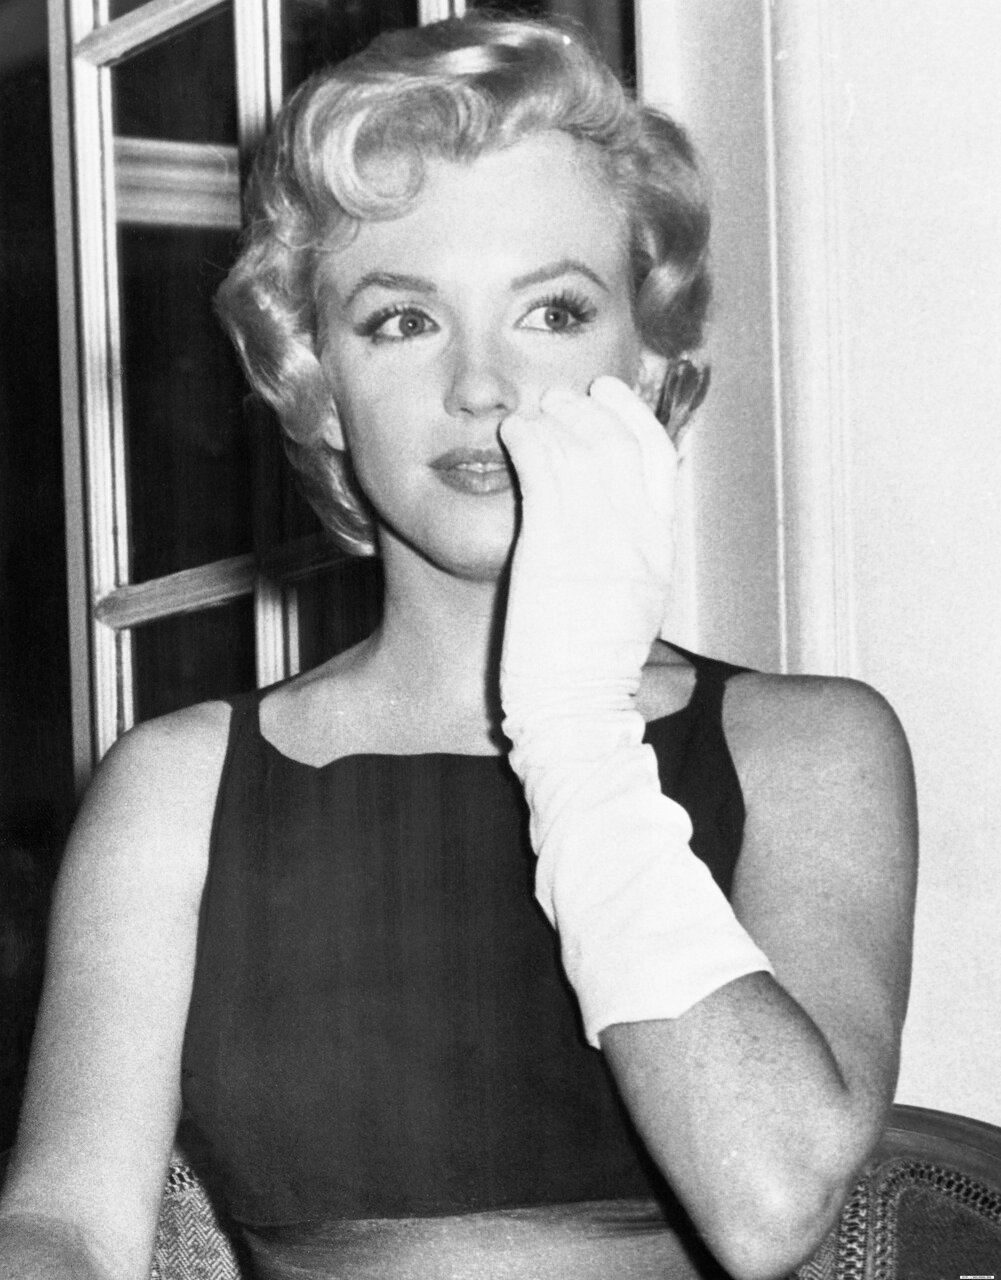 Marilyn Monroe Holding Gloved Hand to Face